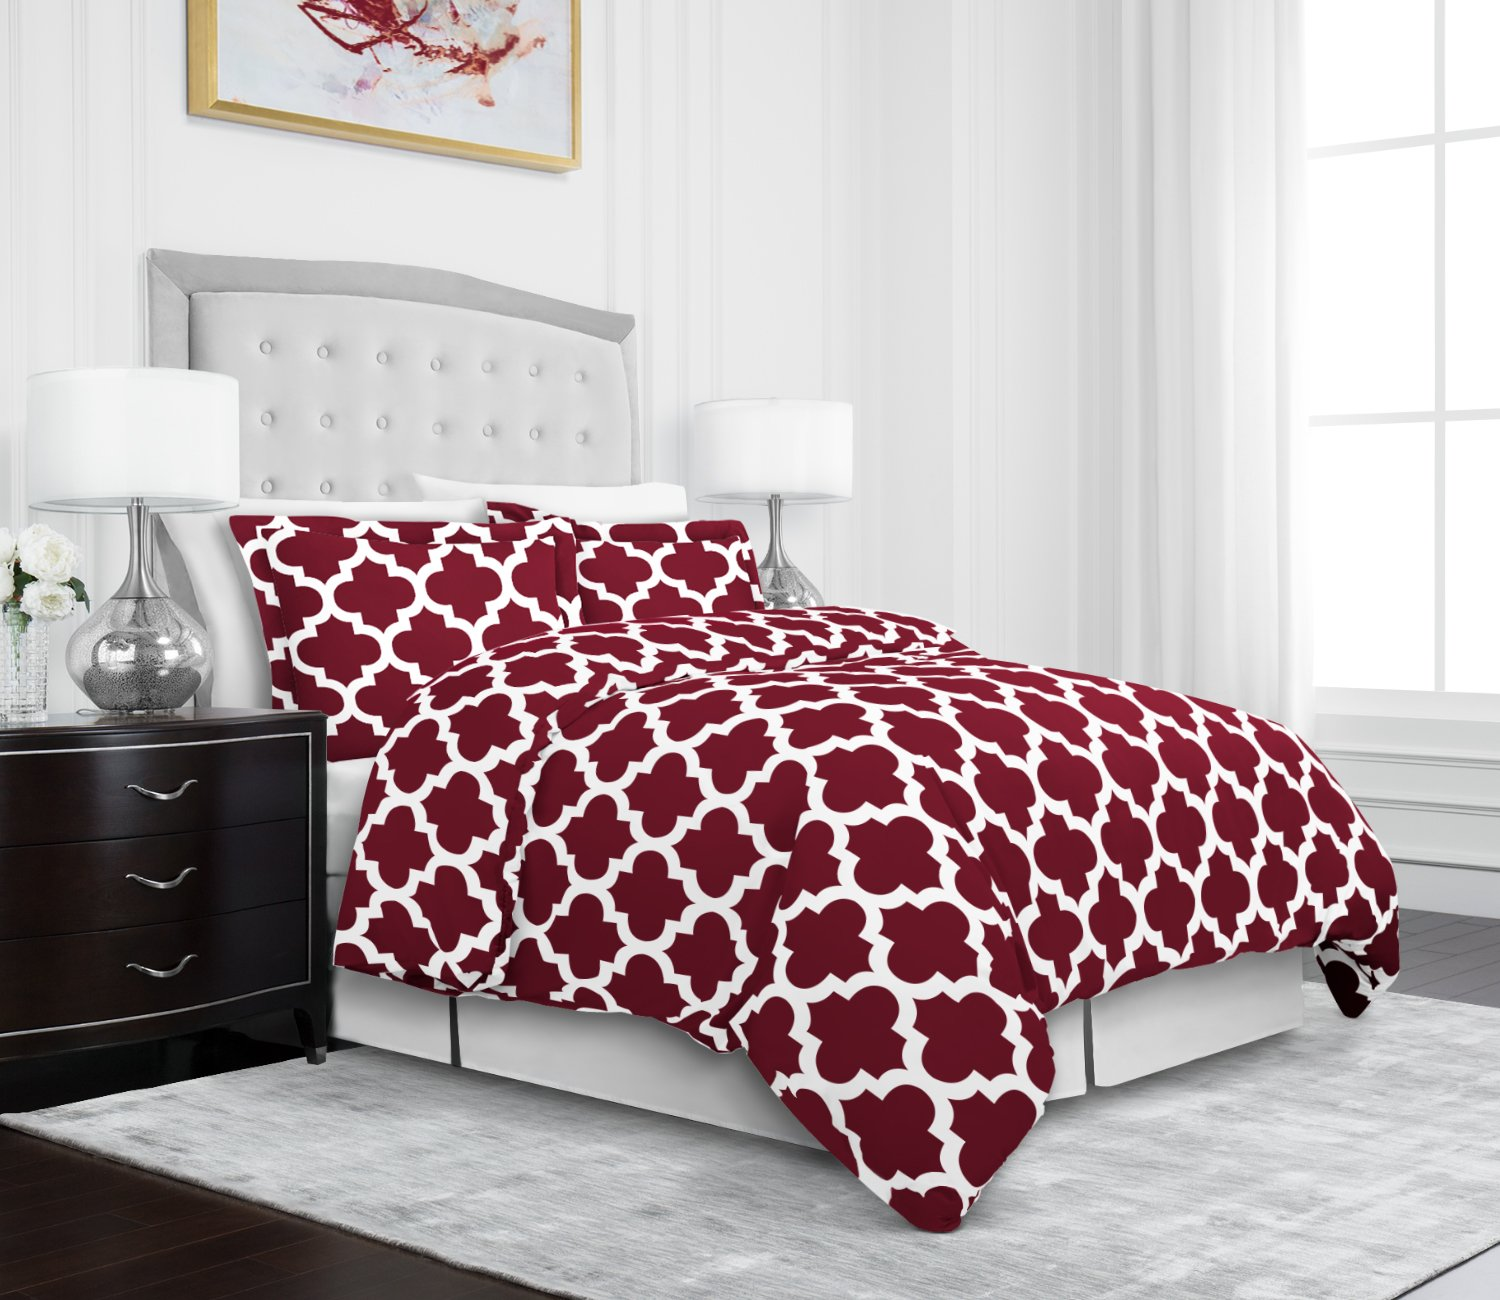 Egyptian Luxury Quatrefoil Duvet Cover Set - 3-Piece Ultra Soft Double Brushed Microfiber Printed Cover